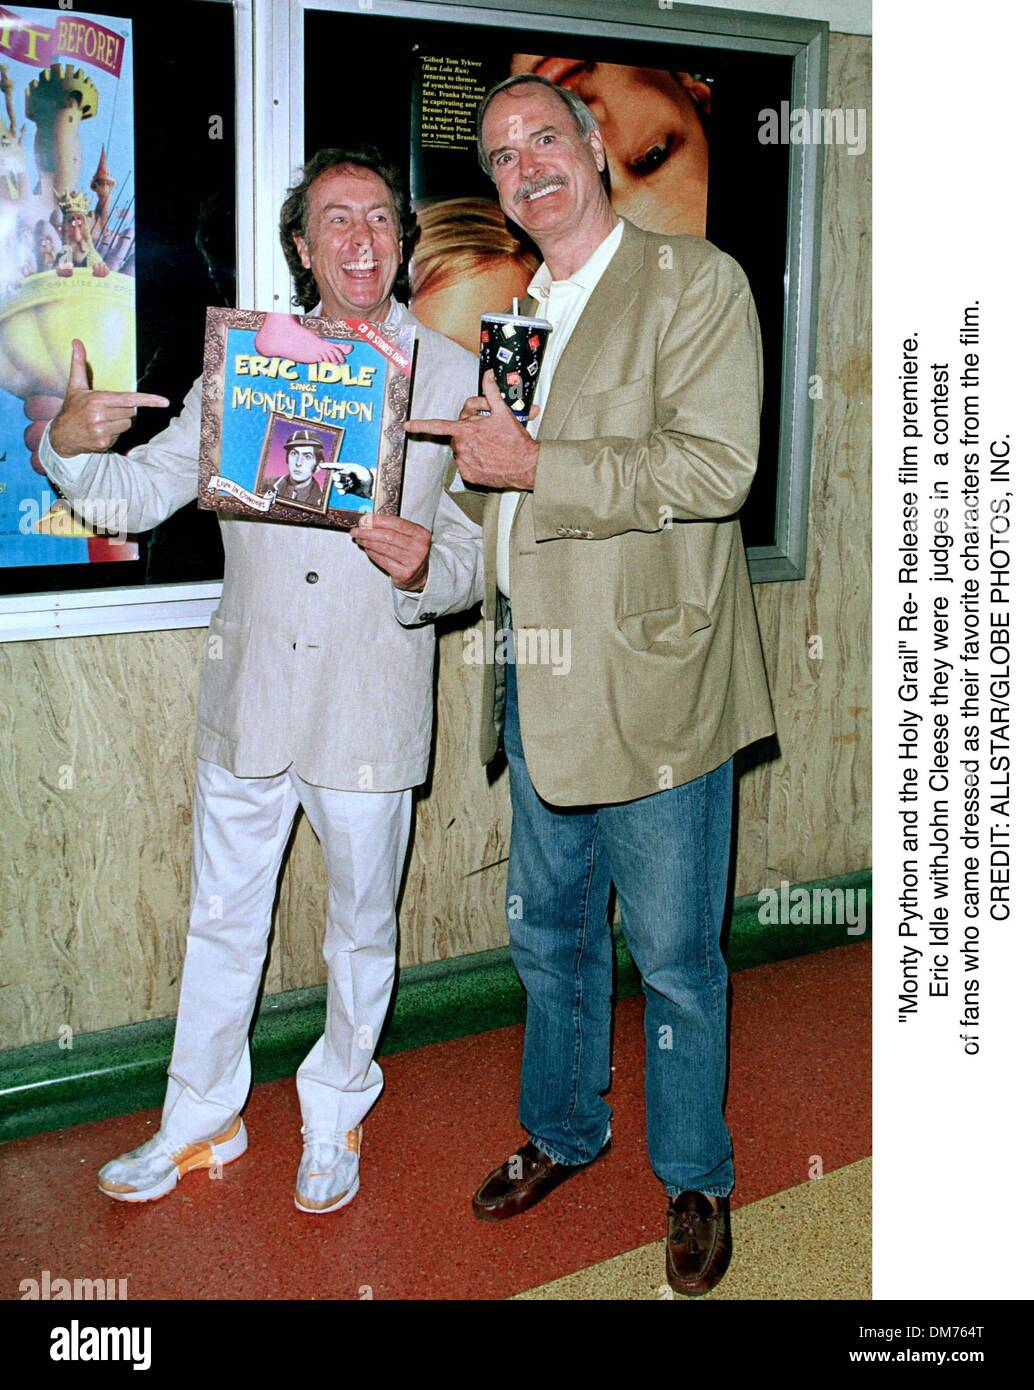 ''Monty Python and the Holy Grail'' Re- Release film premiere.Eric Idle withJohn Cleese they were judges in a contest .of fans who came dressed as their favorite characters from the film. - Stock Image